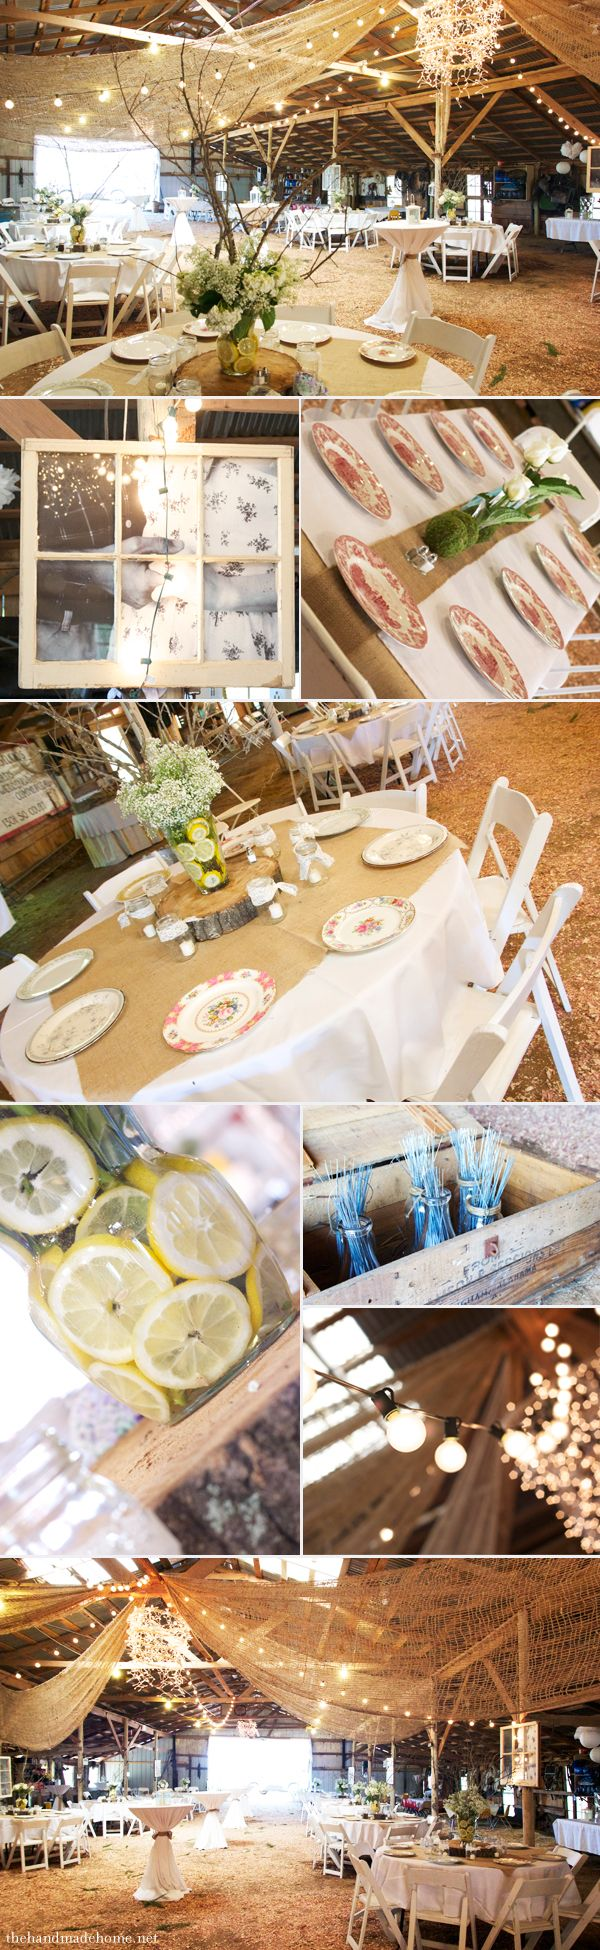 rustic barn weddingIdeas Boards, Handmade Wedding, Wedding Ideas, Barns Receptions, Barns Wedding Centerpieces, Barn Weddings, Simply Beautiful, Edward Style, Wanna Married